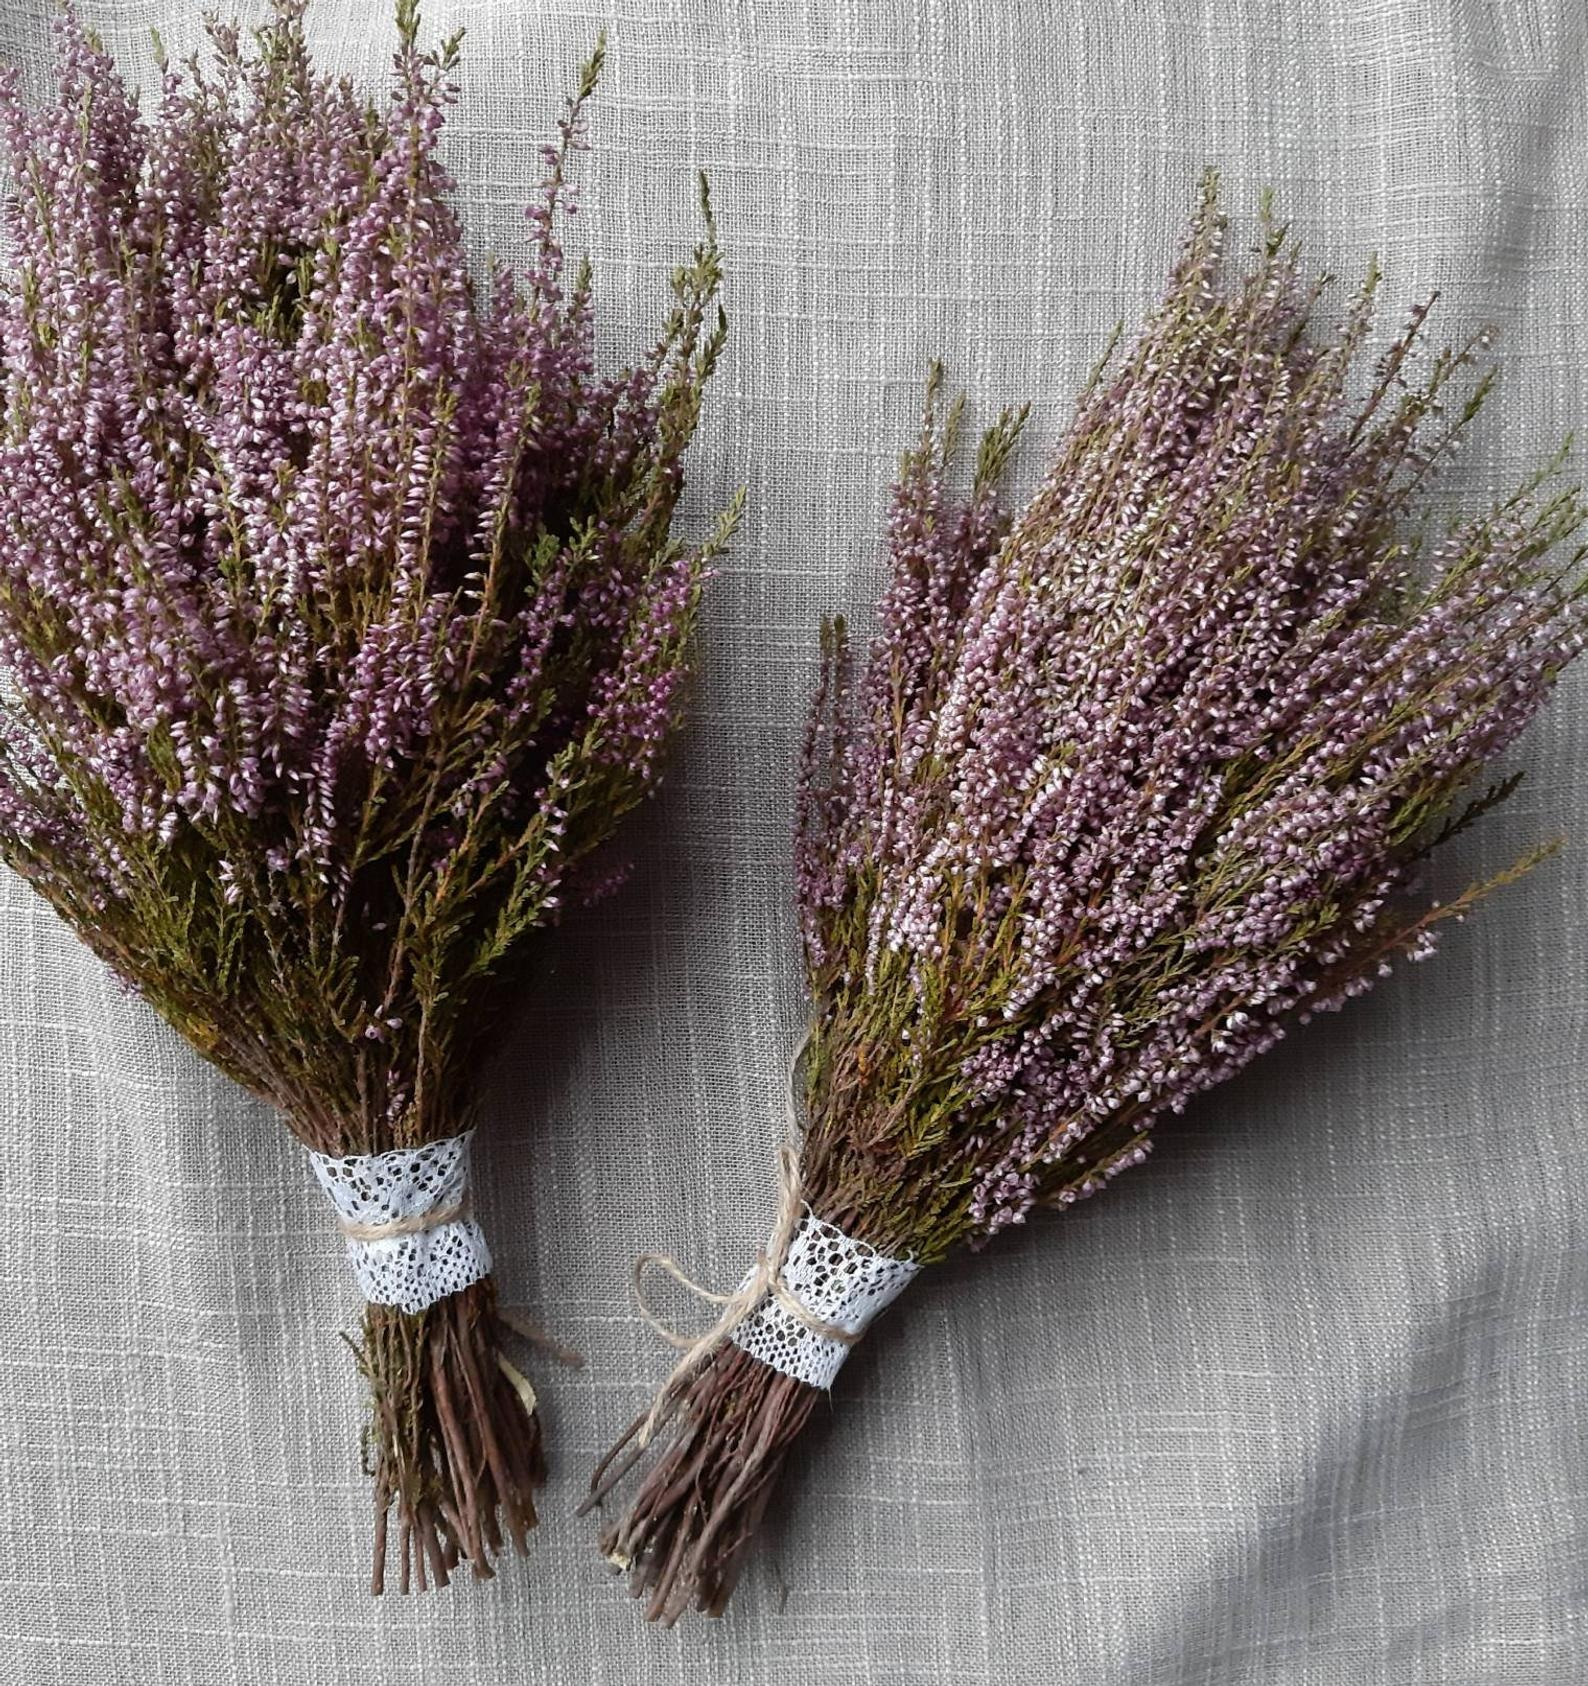 dried lavender bunches from Etsy